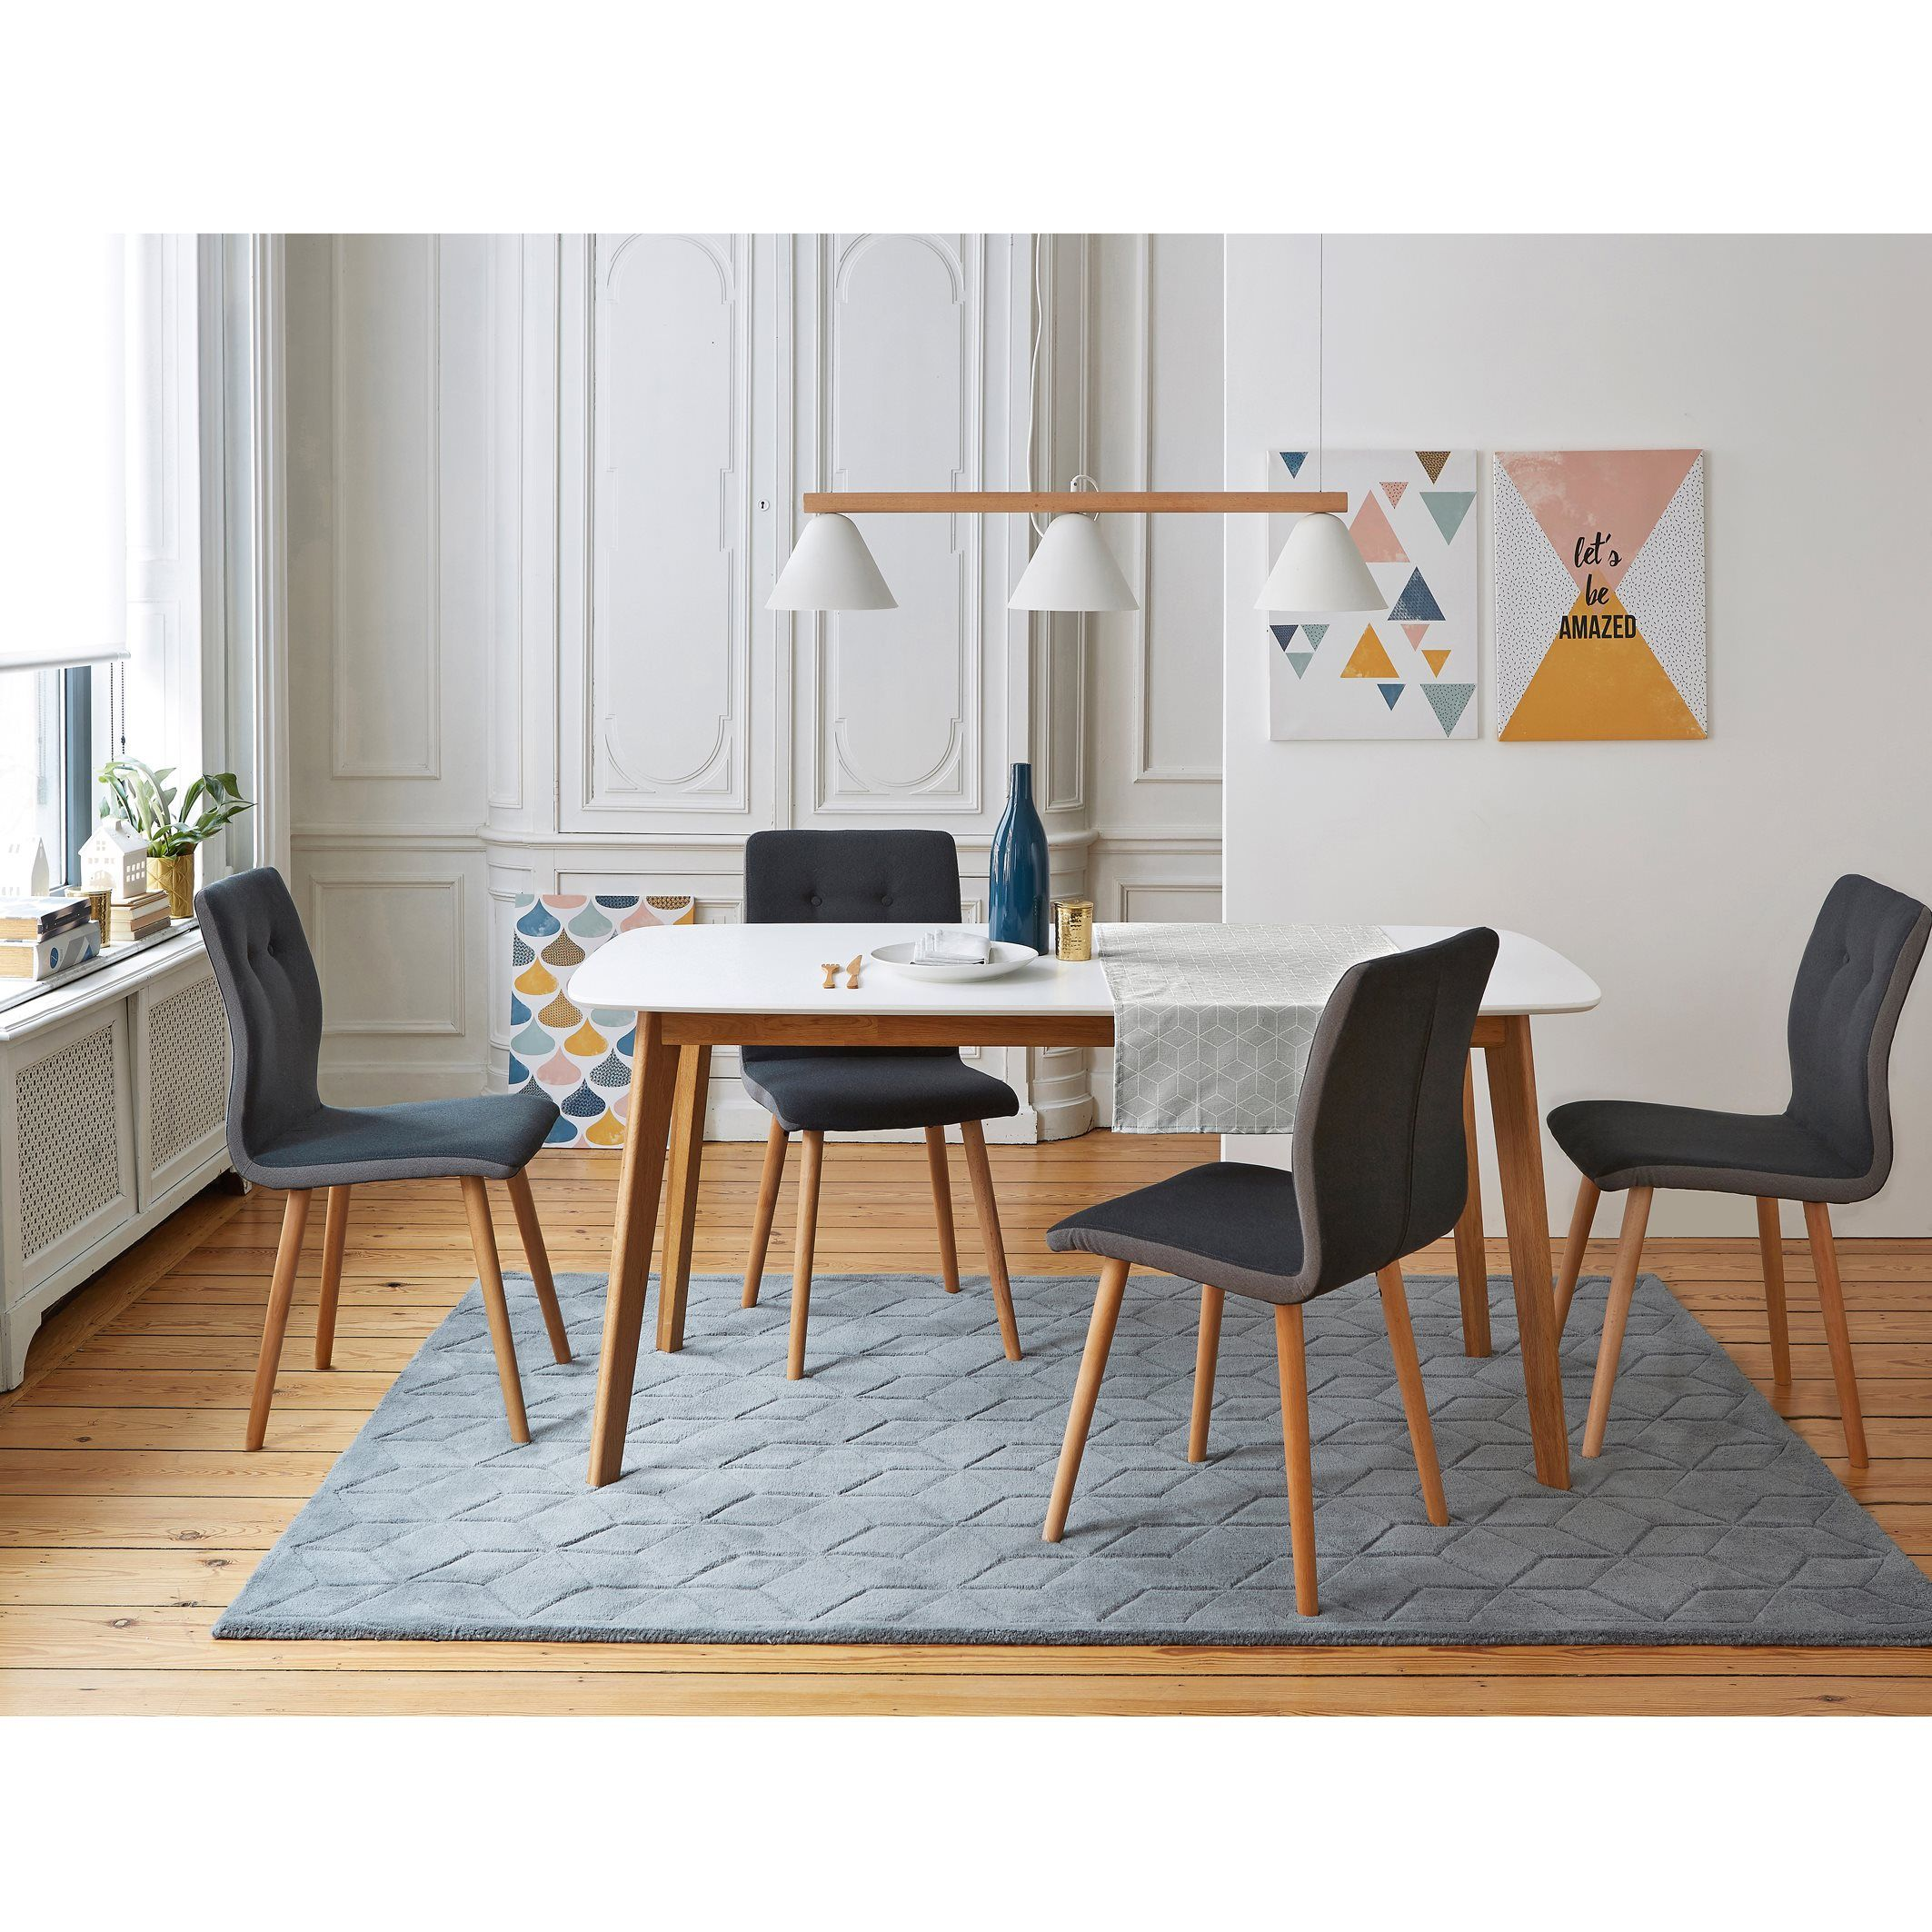 de3e11dcb01fa4d8b415c9f7308a3807 Luxe De La Redoute Table Basse Scandinave